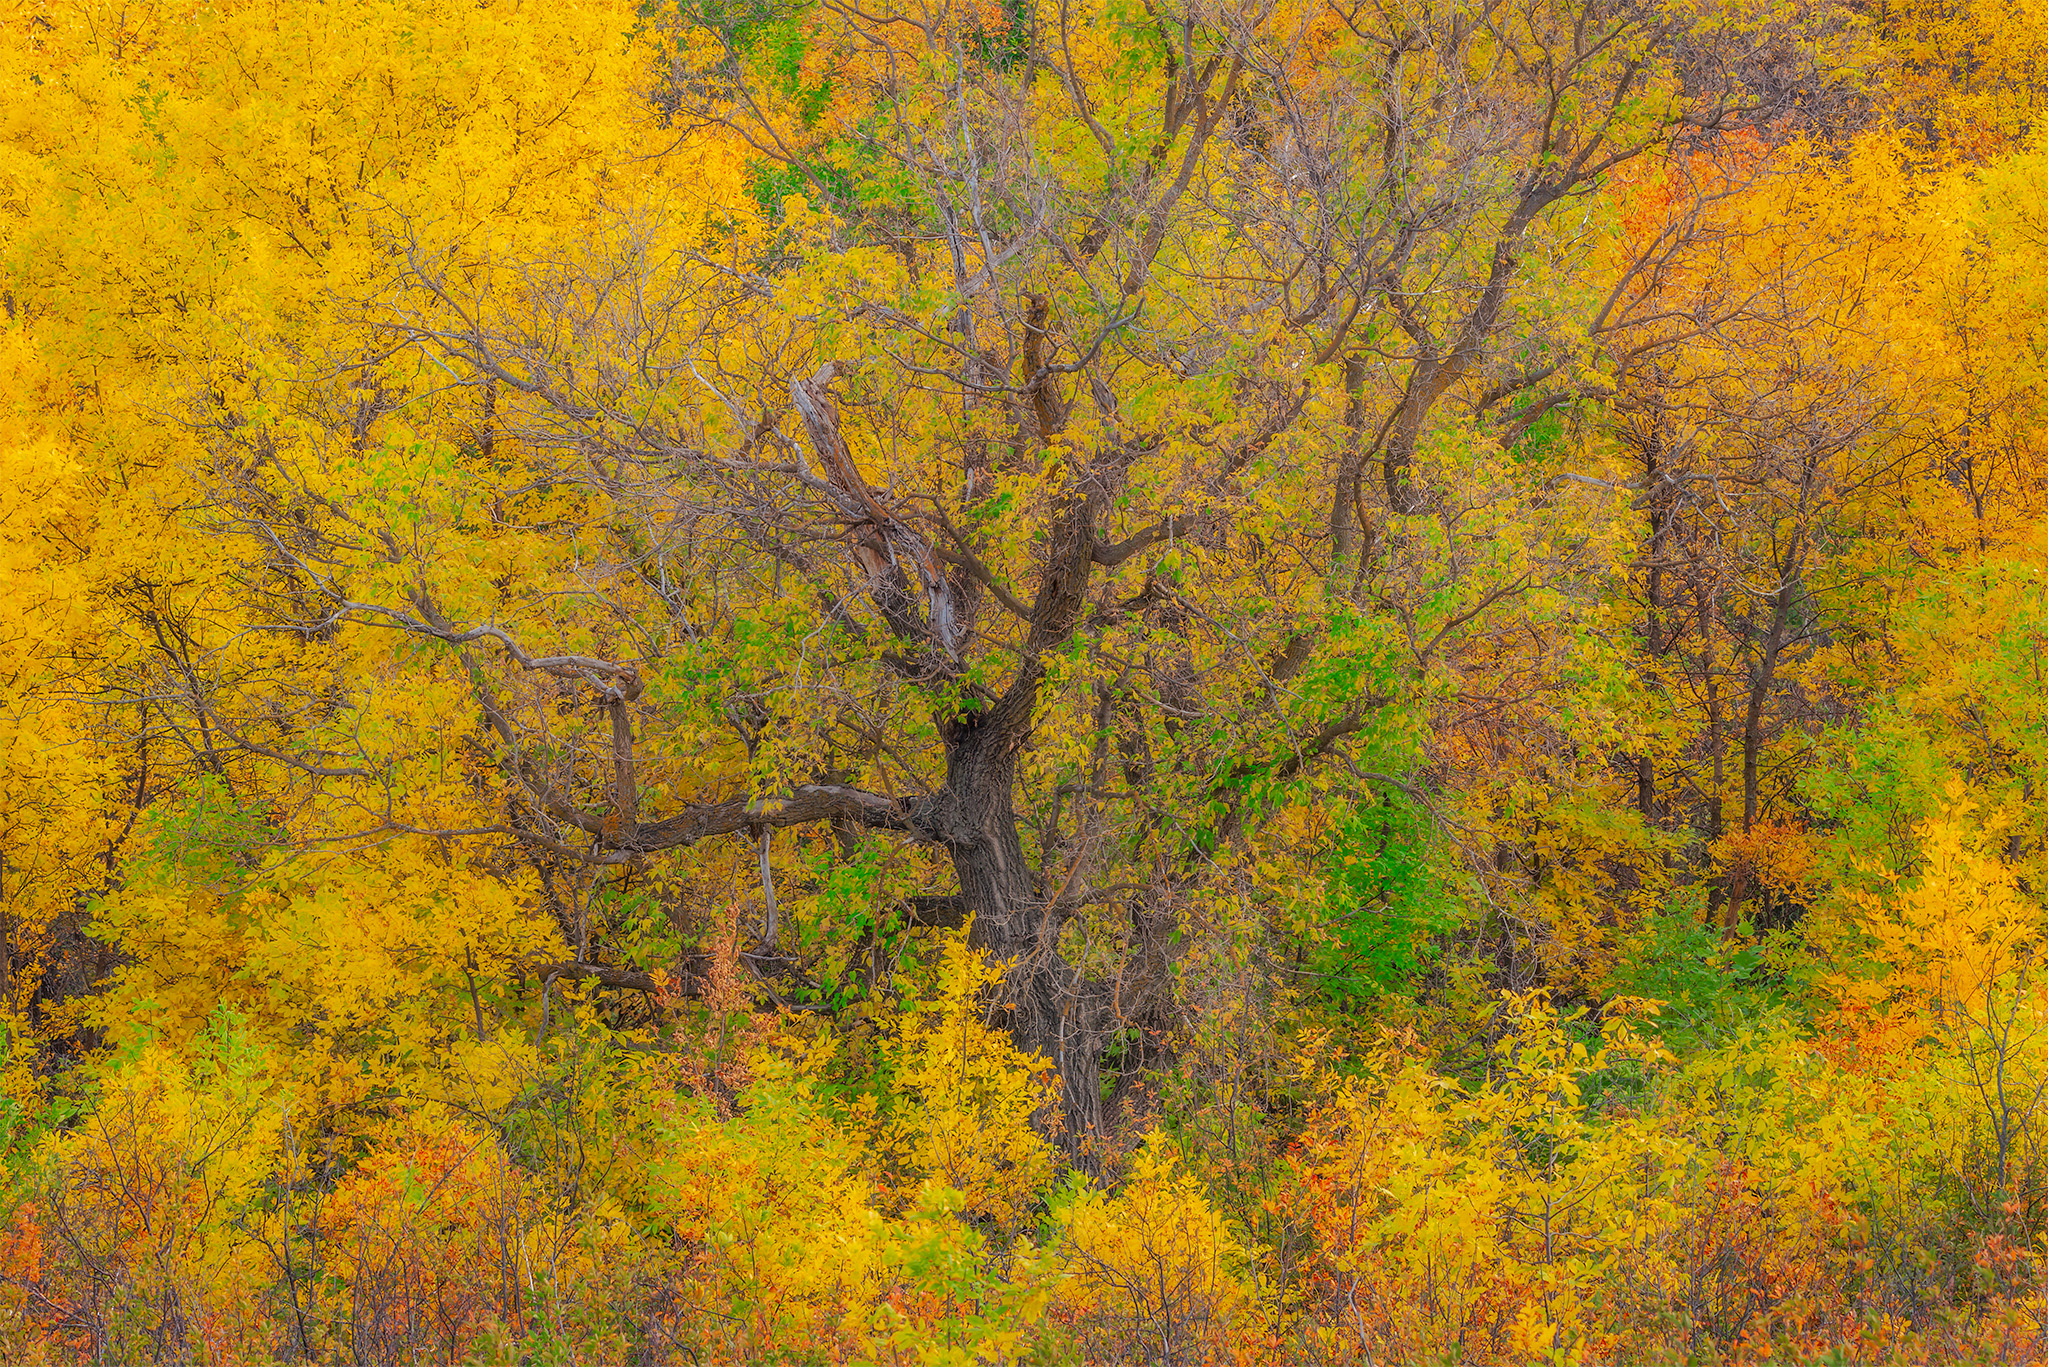 An intimate landscape photograph of an old poplar tree surrounded by vivid fall colours in Wascana Trails, Sasktchewan